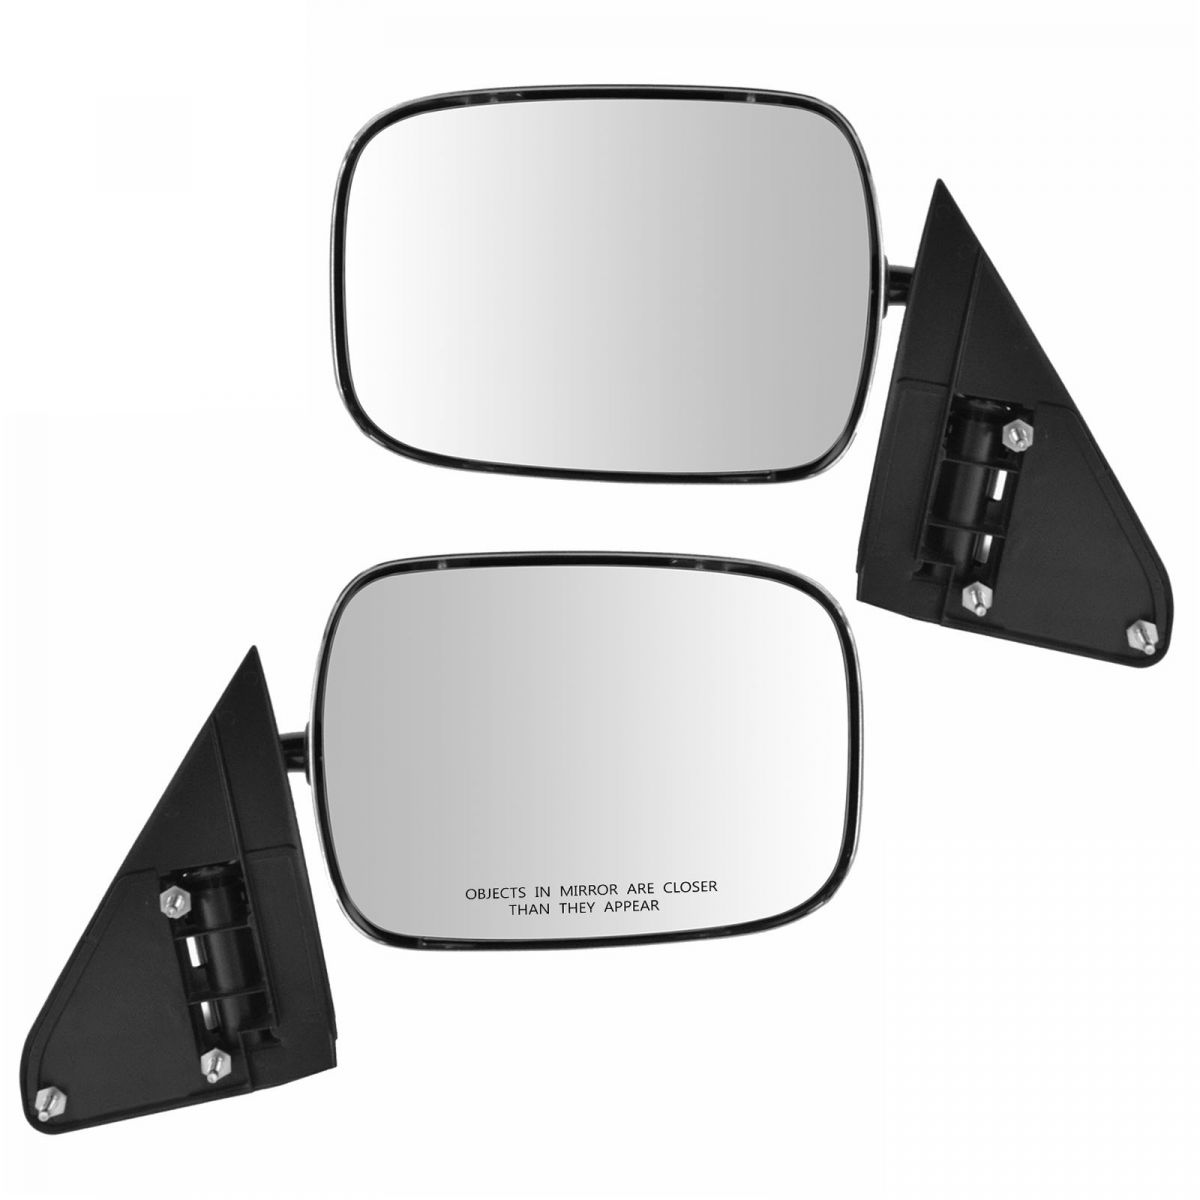 New Mirrors Set of 2 Driver /& Passenger Side for Chevy Suburban LH RH Tahoe Pair